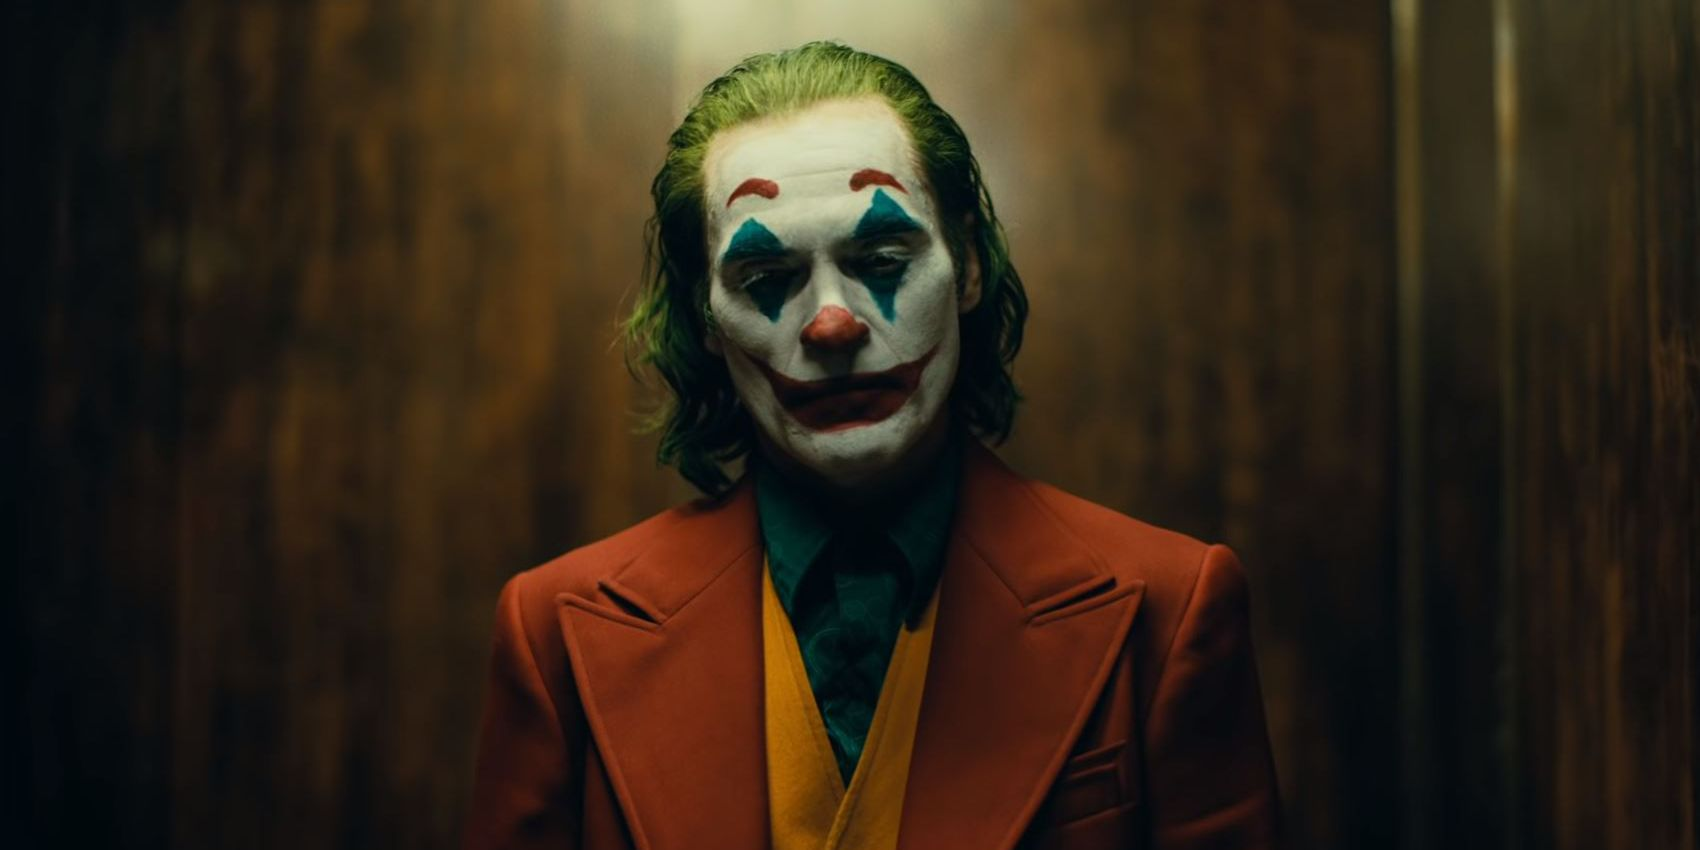 'Joker' trailer released; DC's iconic Batman villain takes the lead